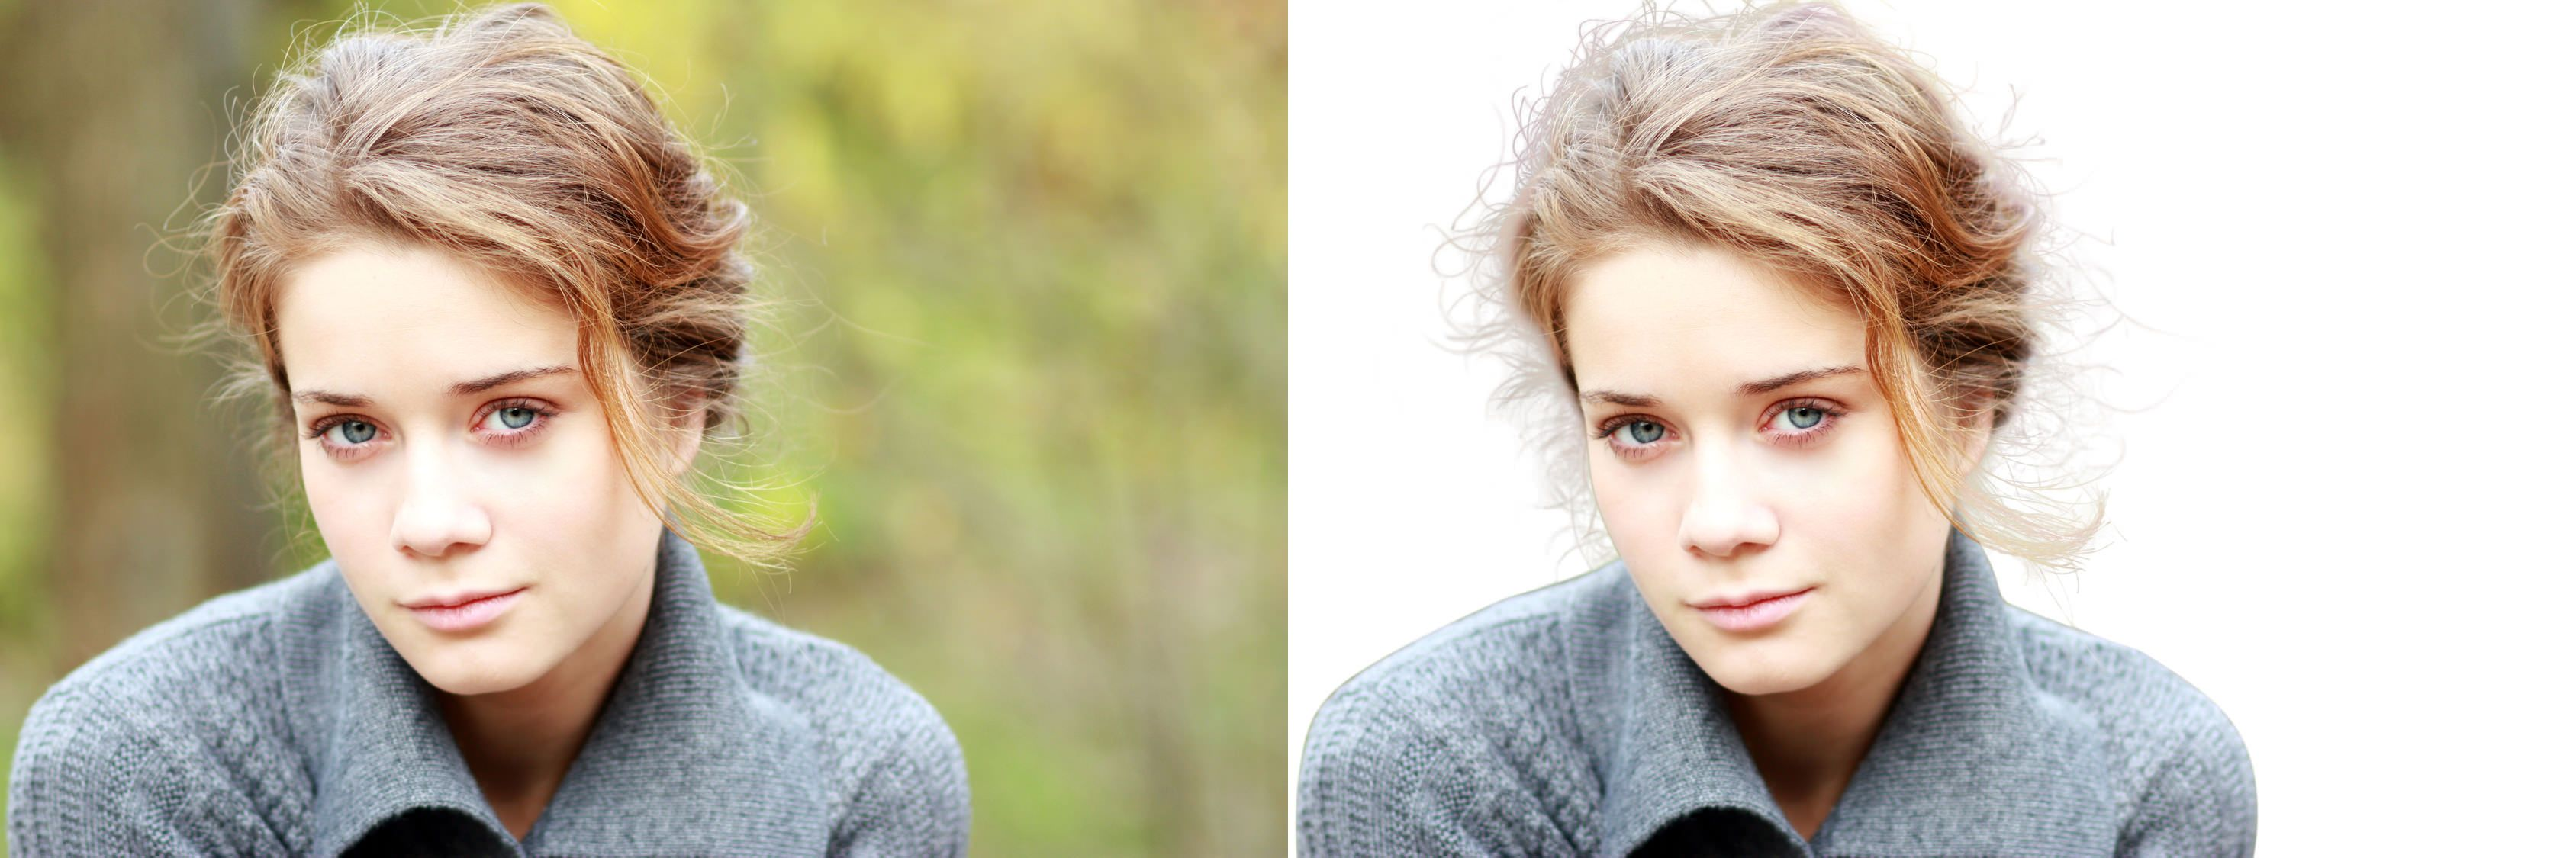 17 Best images about Photo background remove or on Pinterest ...